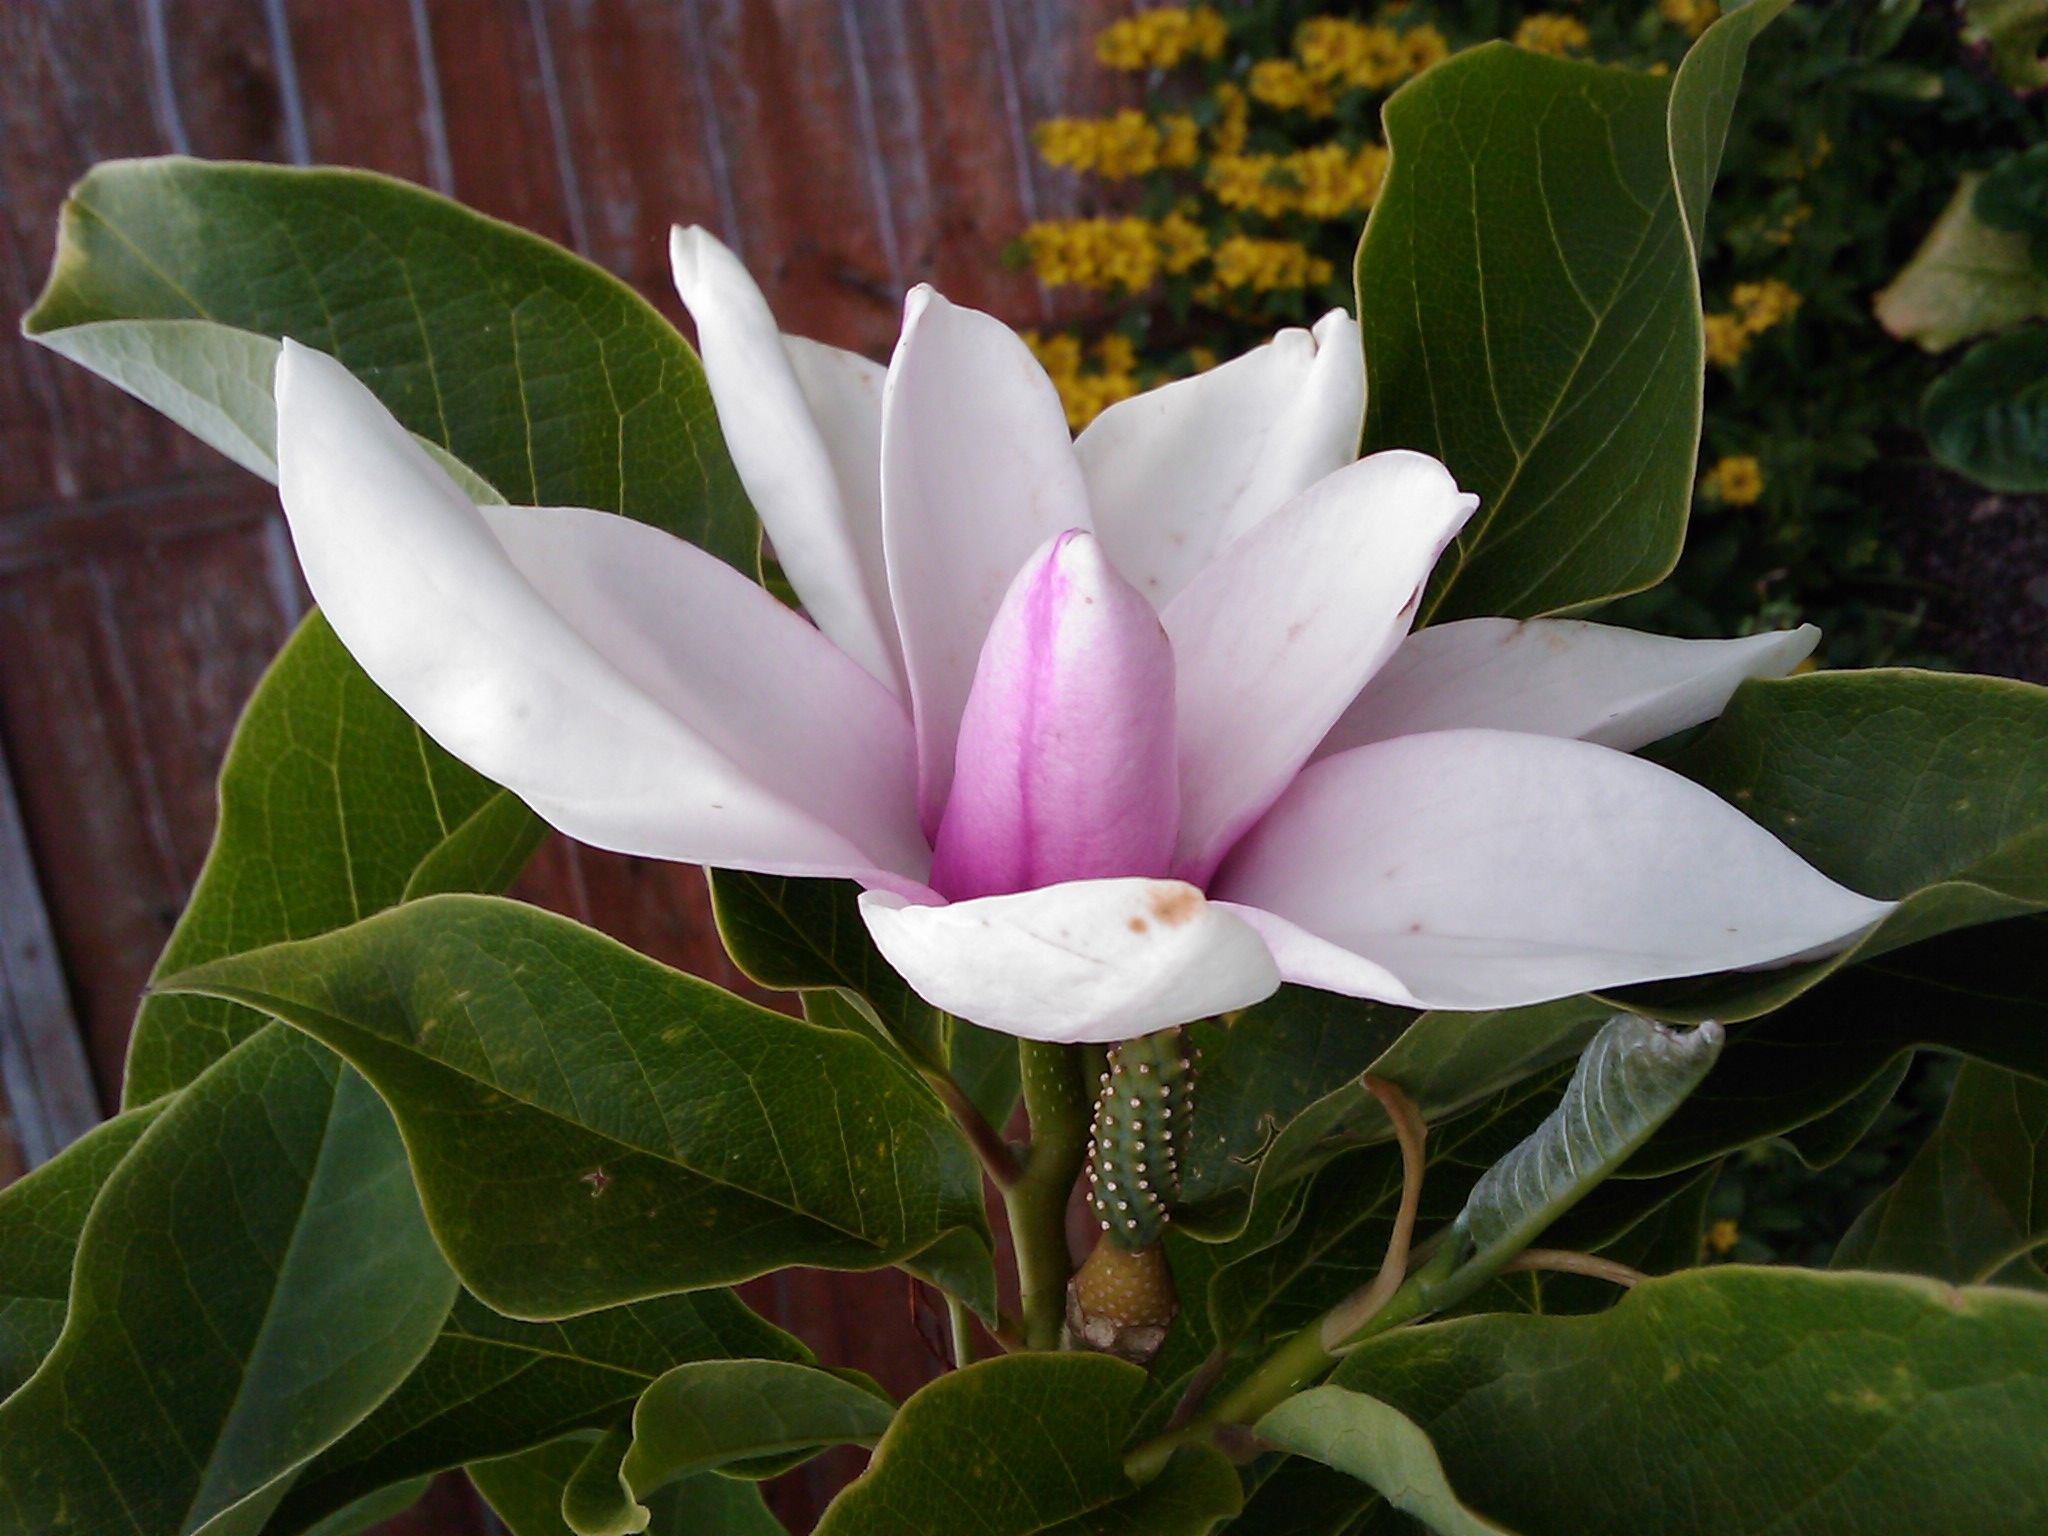 Home garden gallery  Top  ideas about Magnolia on Pinterest  Magnolias Flower and Seeds